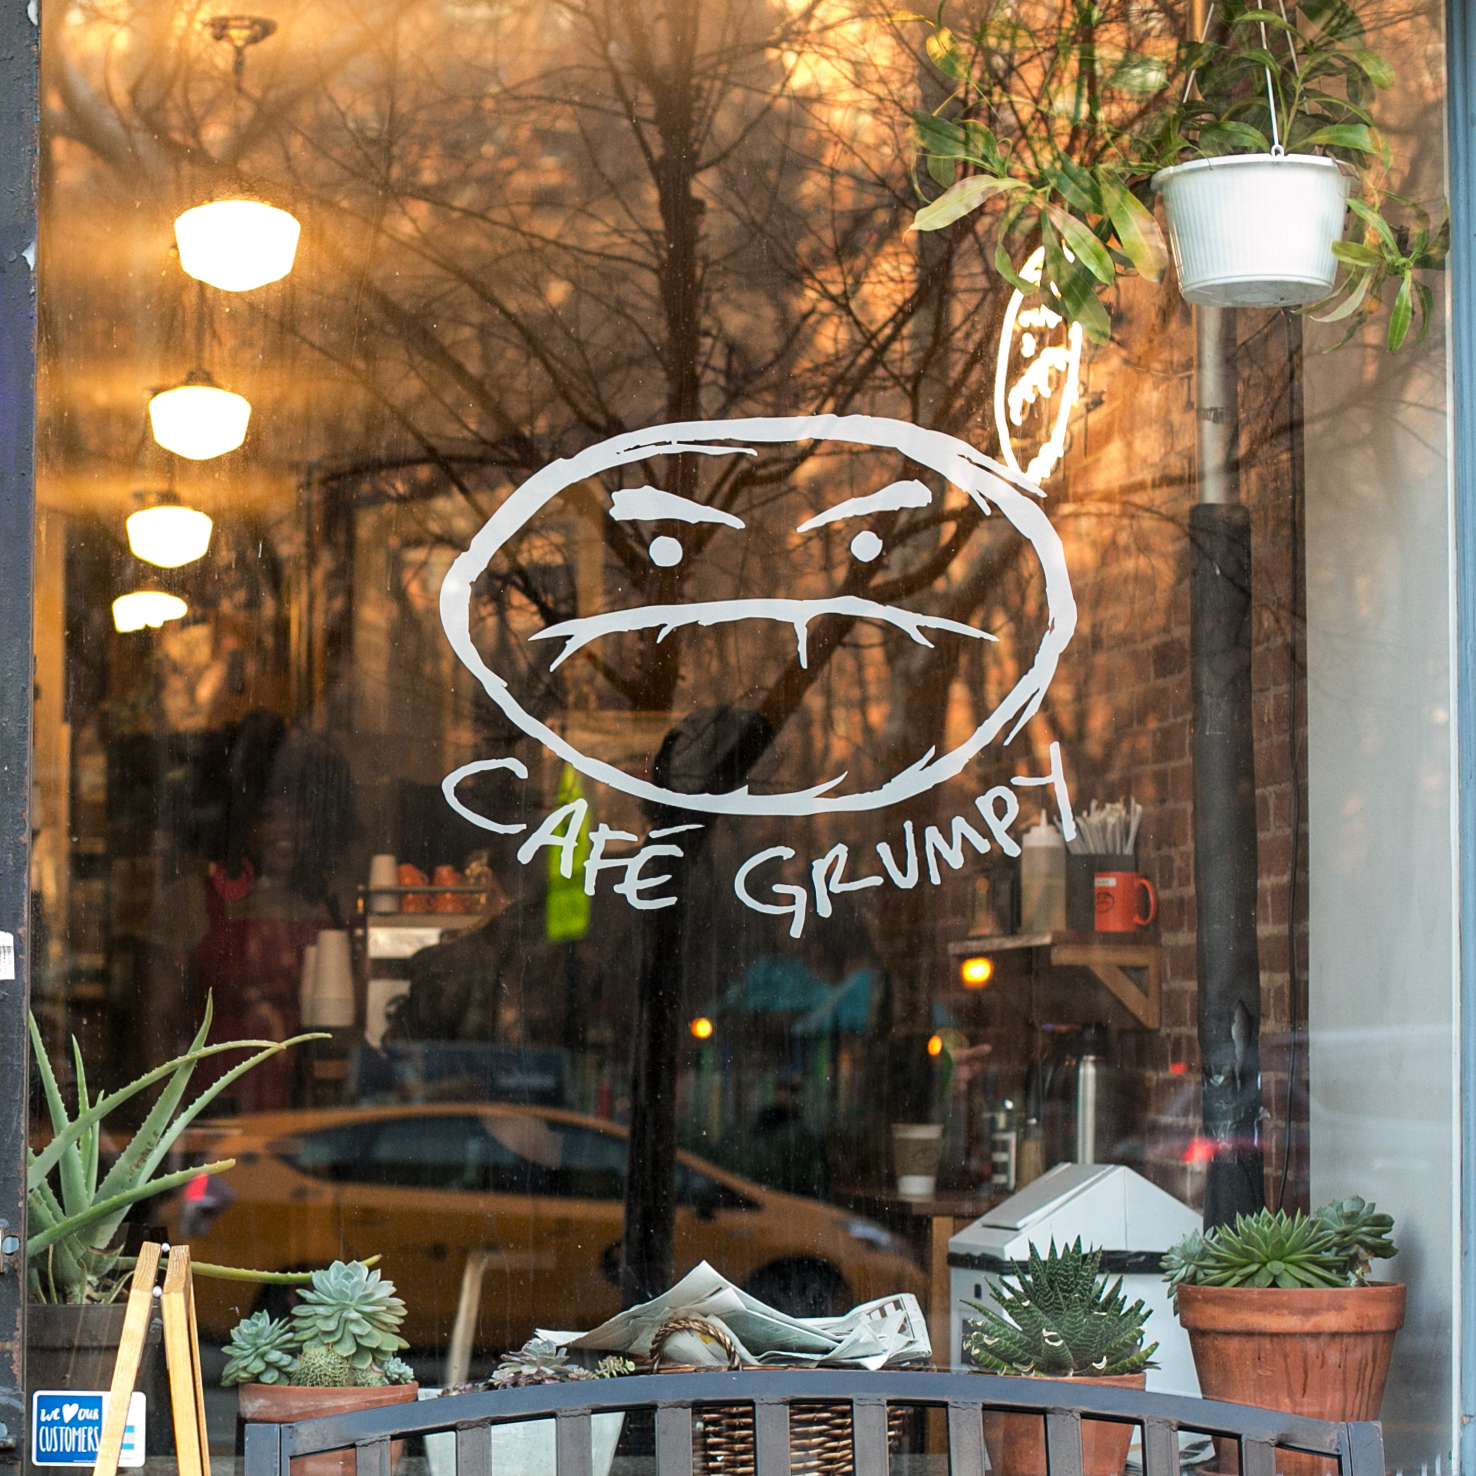 lower-east-side-cafe-grumpy.jpg